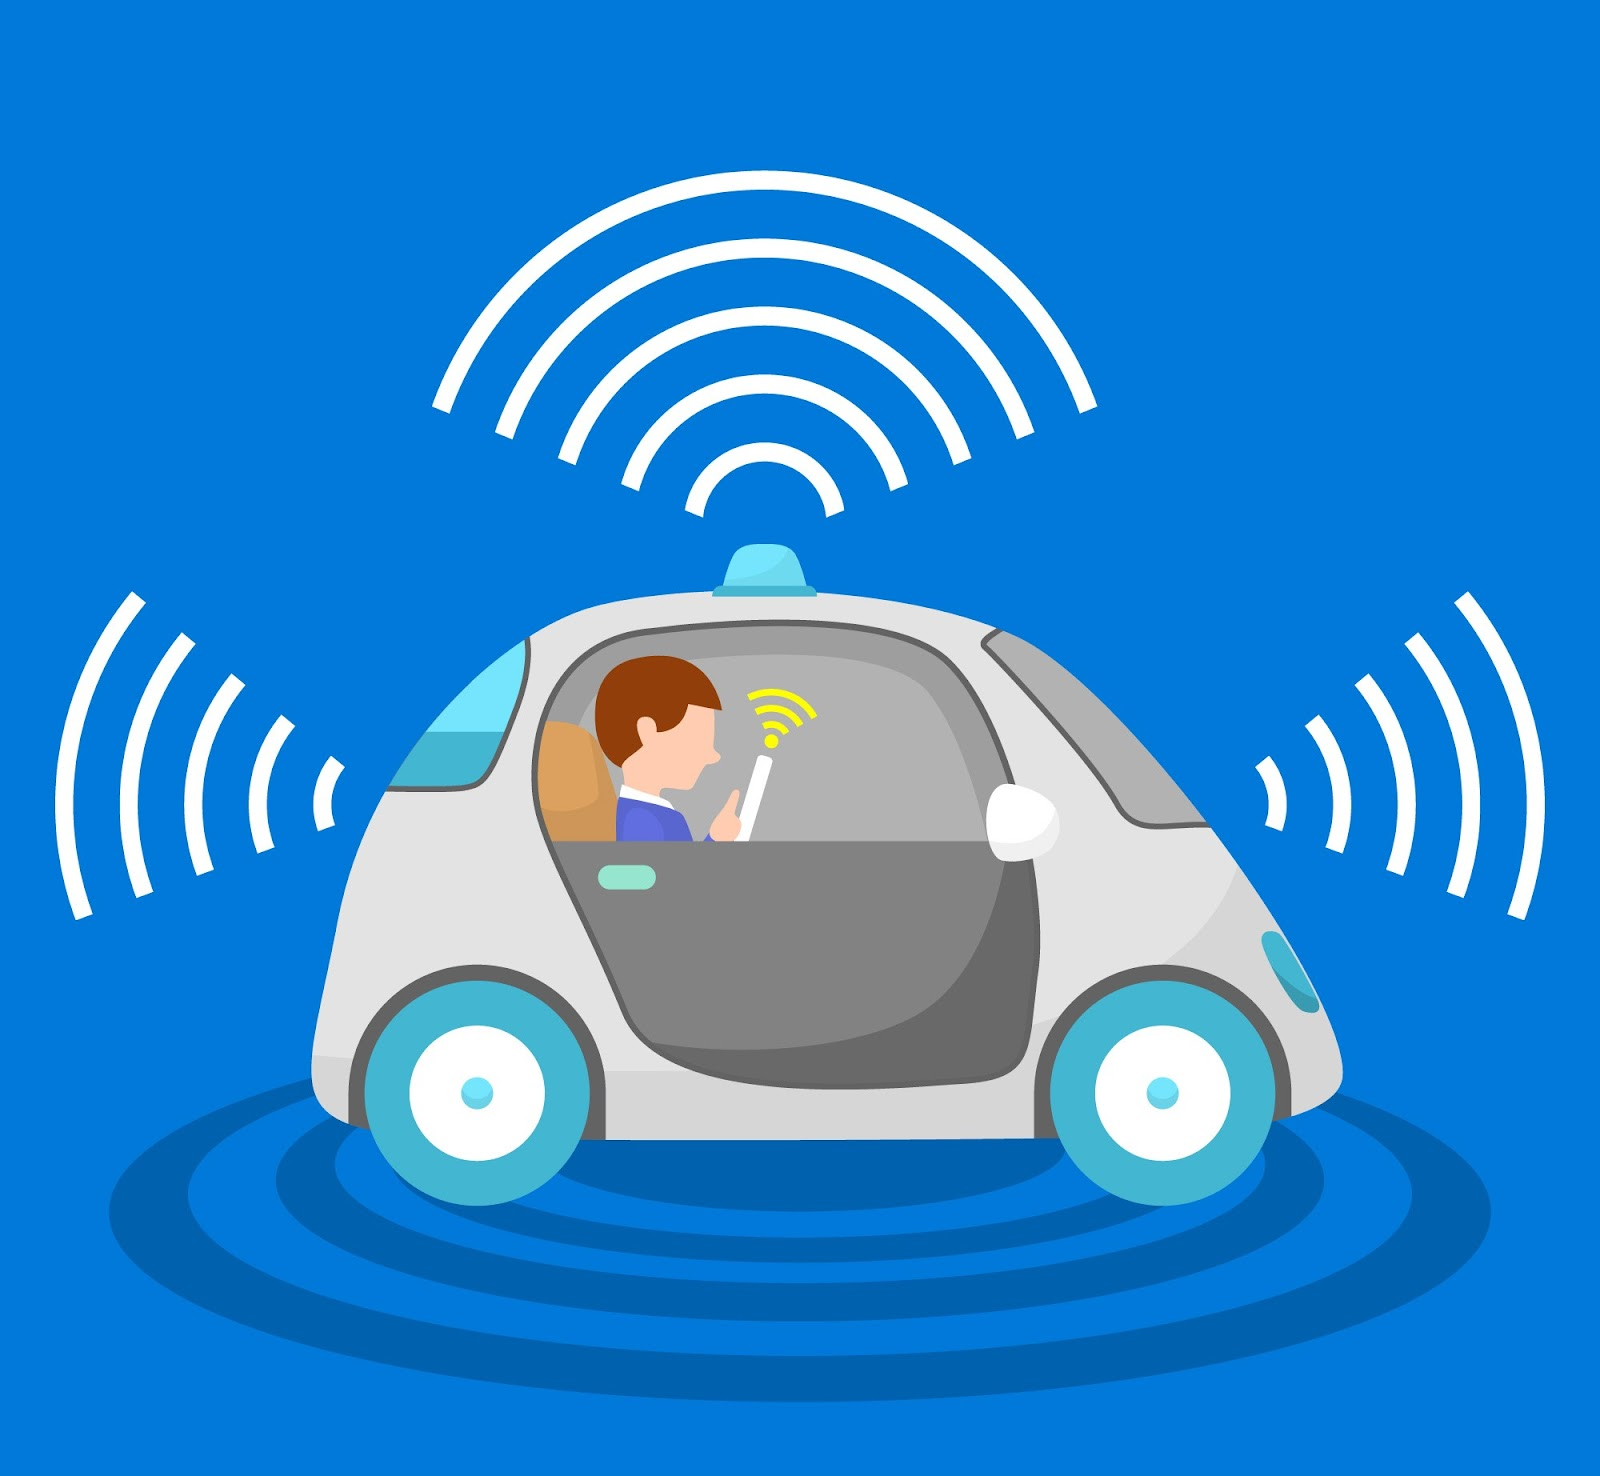 Reinforcement Learning in self-driving cars.